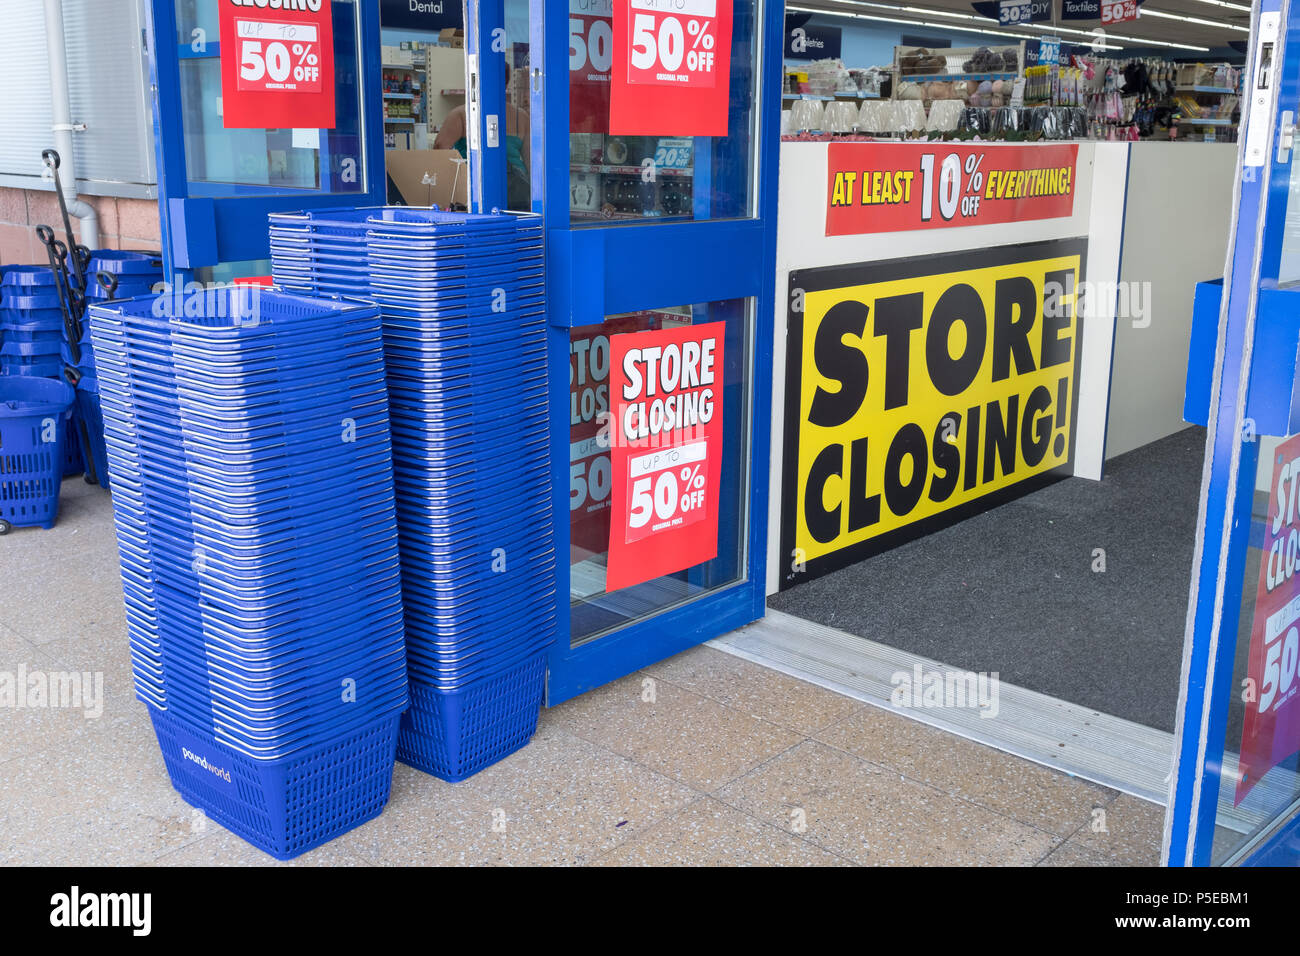 View of the front entrance to the poundworld plus store in Dumfries which is closing down and goods are being sold at a reduced price. - Stock Image